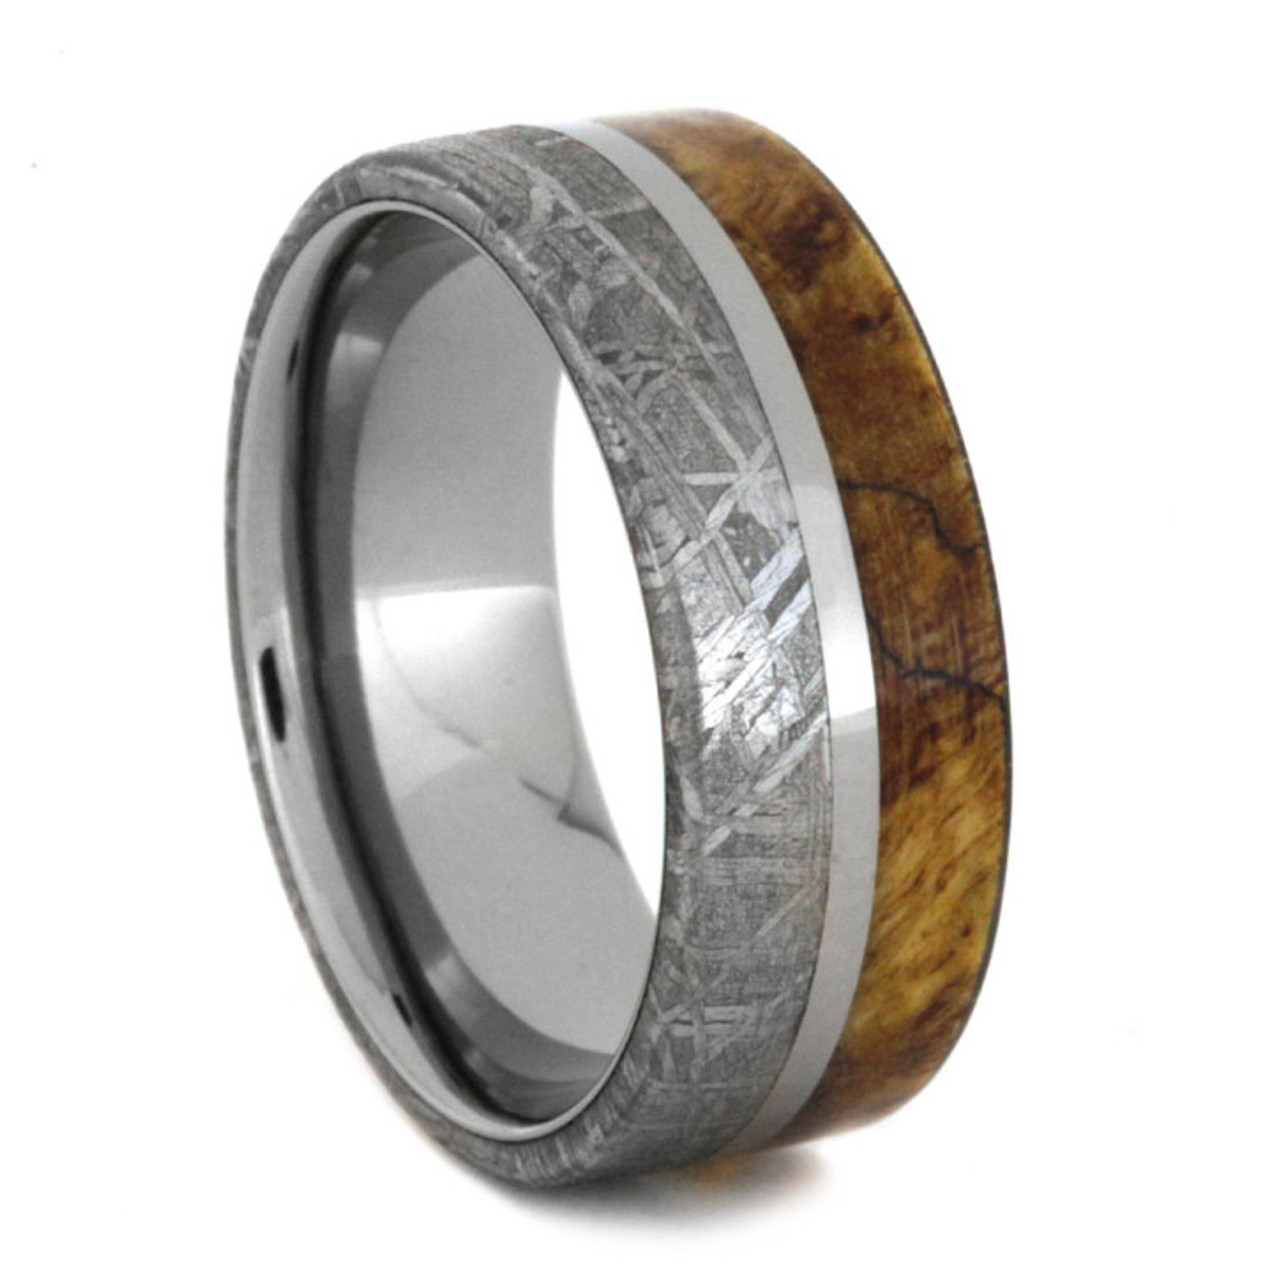 Mens Wedding Rings.8 Mm Meteorite Burl Wood Mens Wedding Bands In Titanium Mb846m